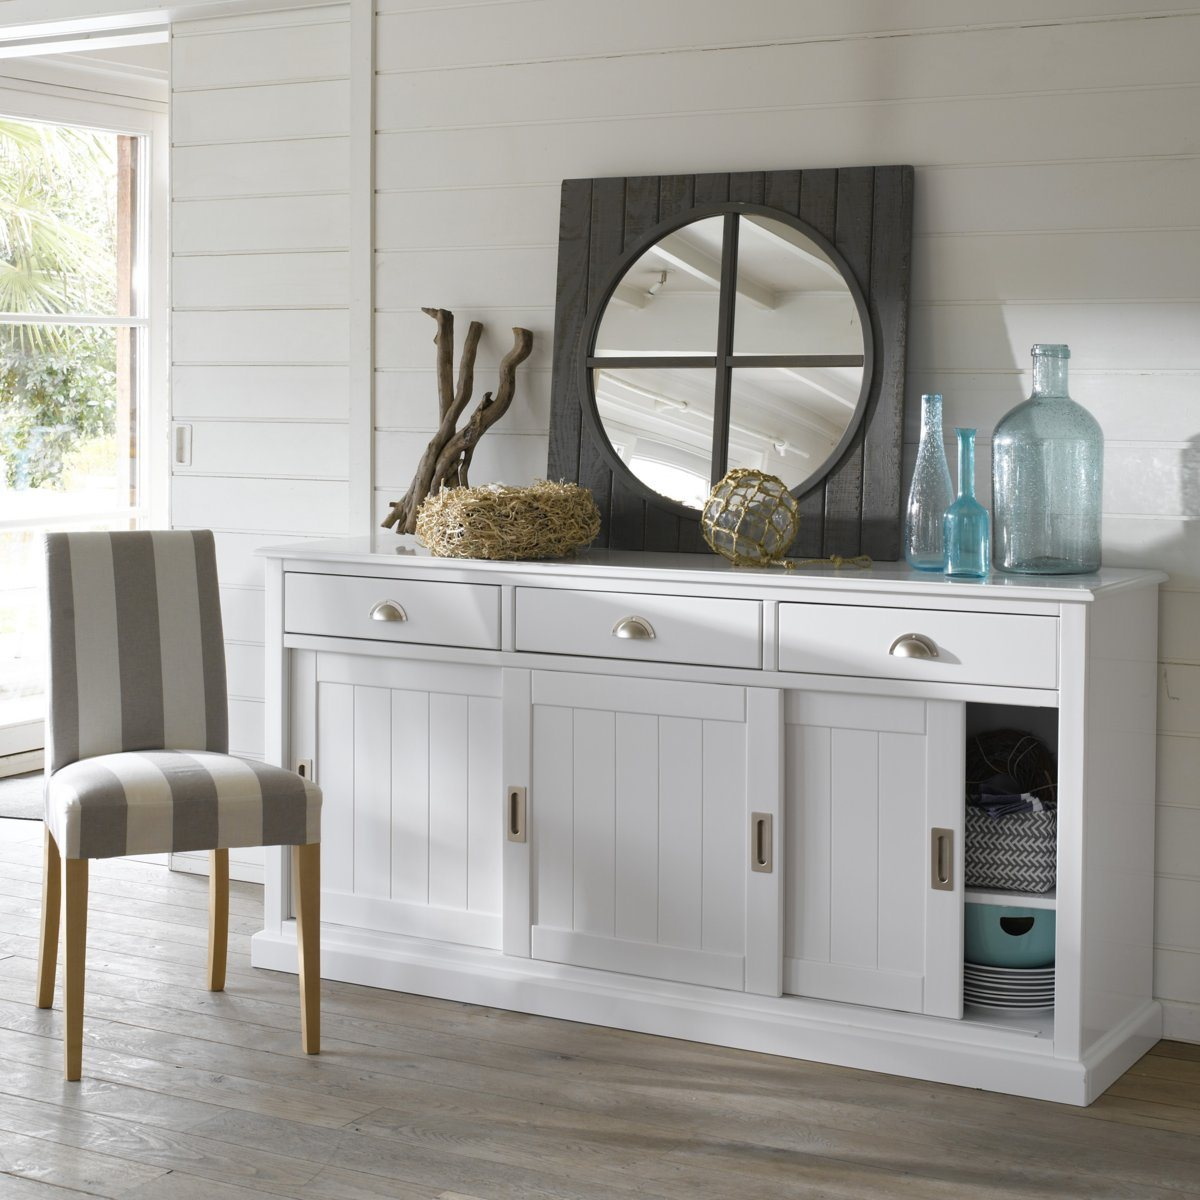 Buffet En Pin Sur Iziva Iziva Com # Enfilade Taupe Carrefour